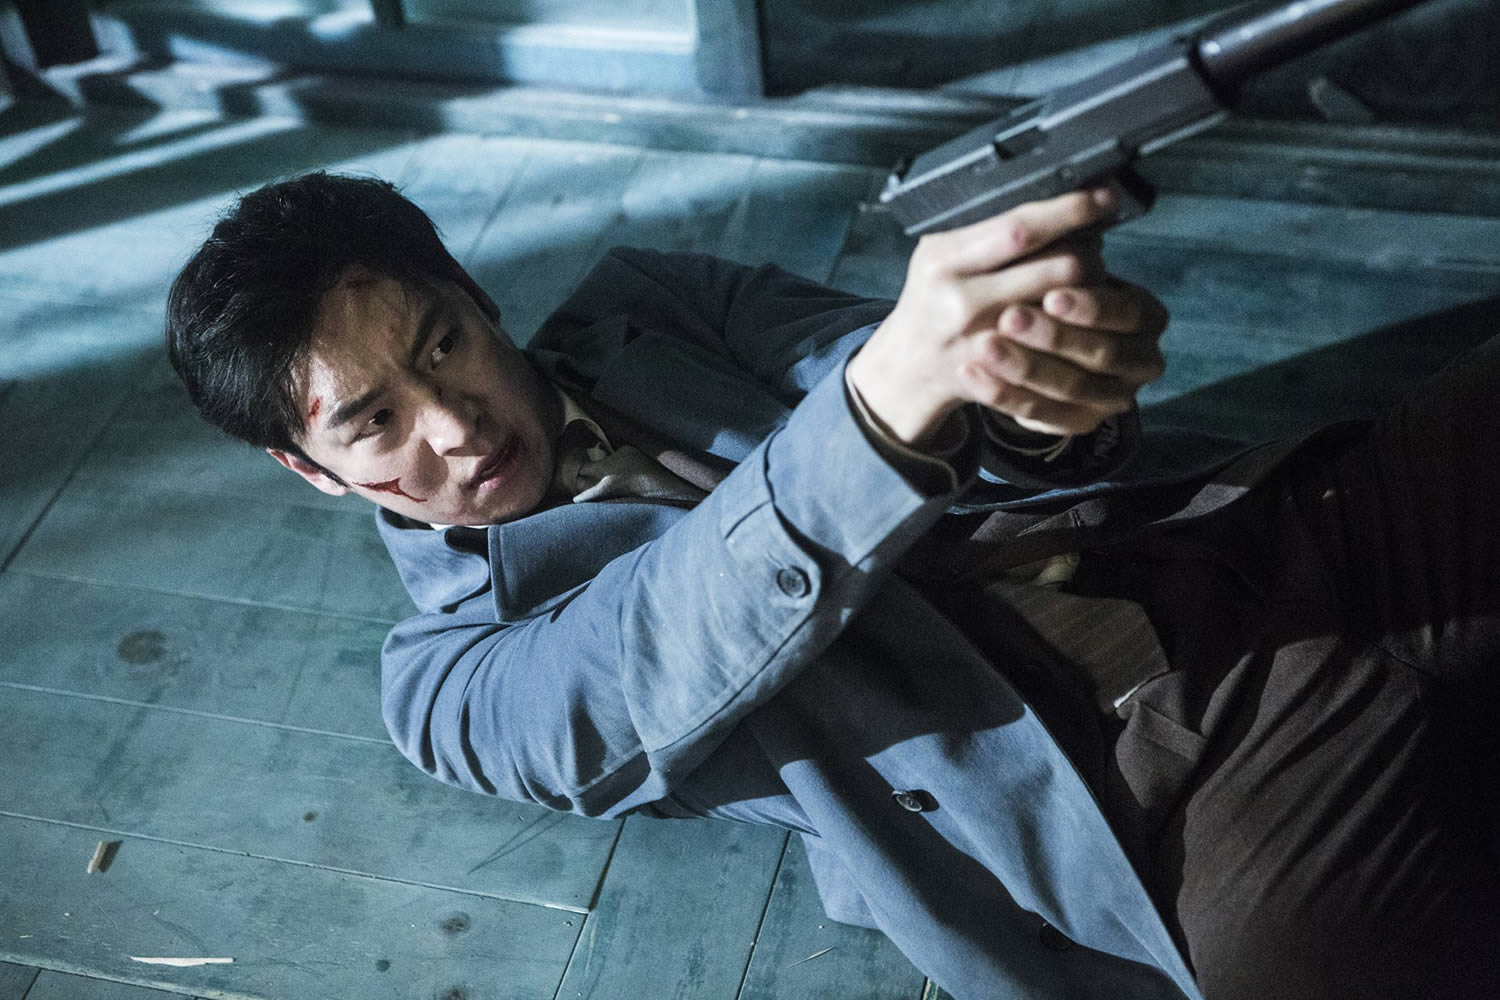 action-packed scene, man with gun, Phantom Detective